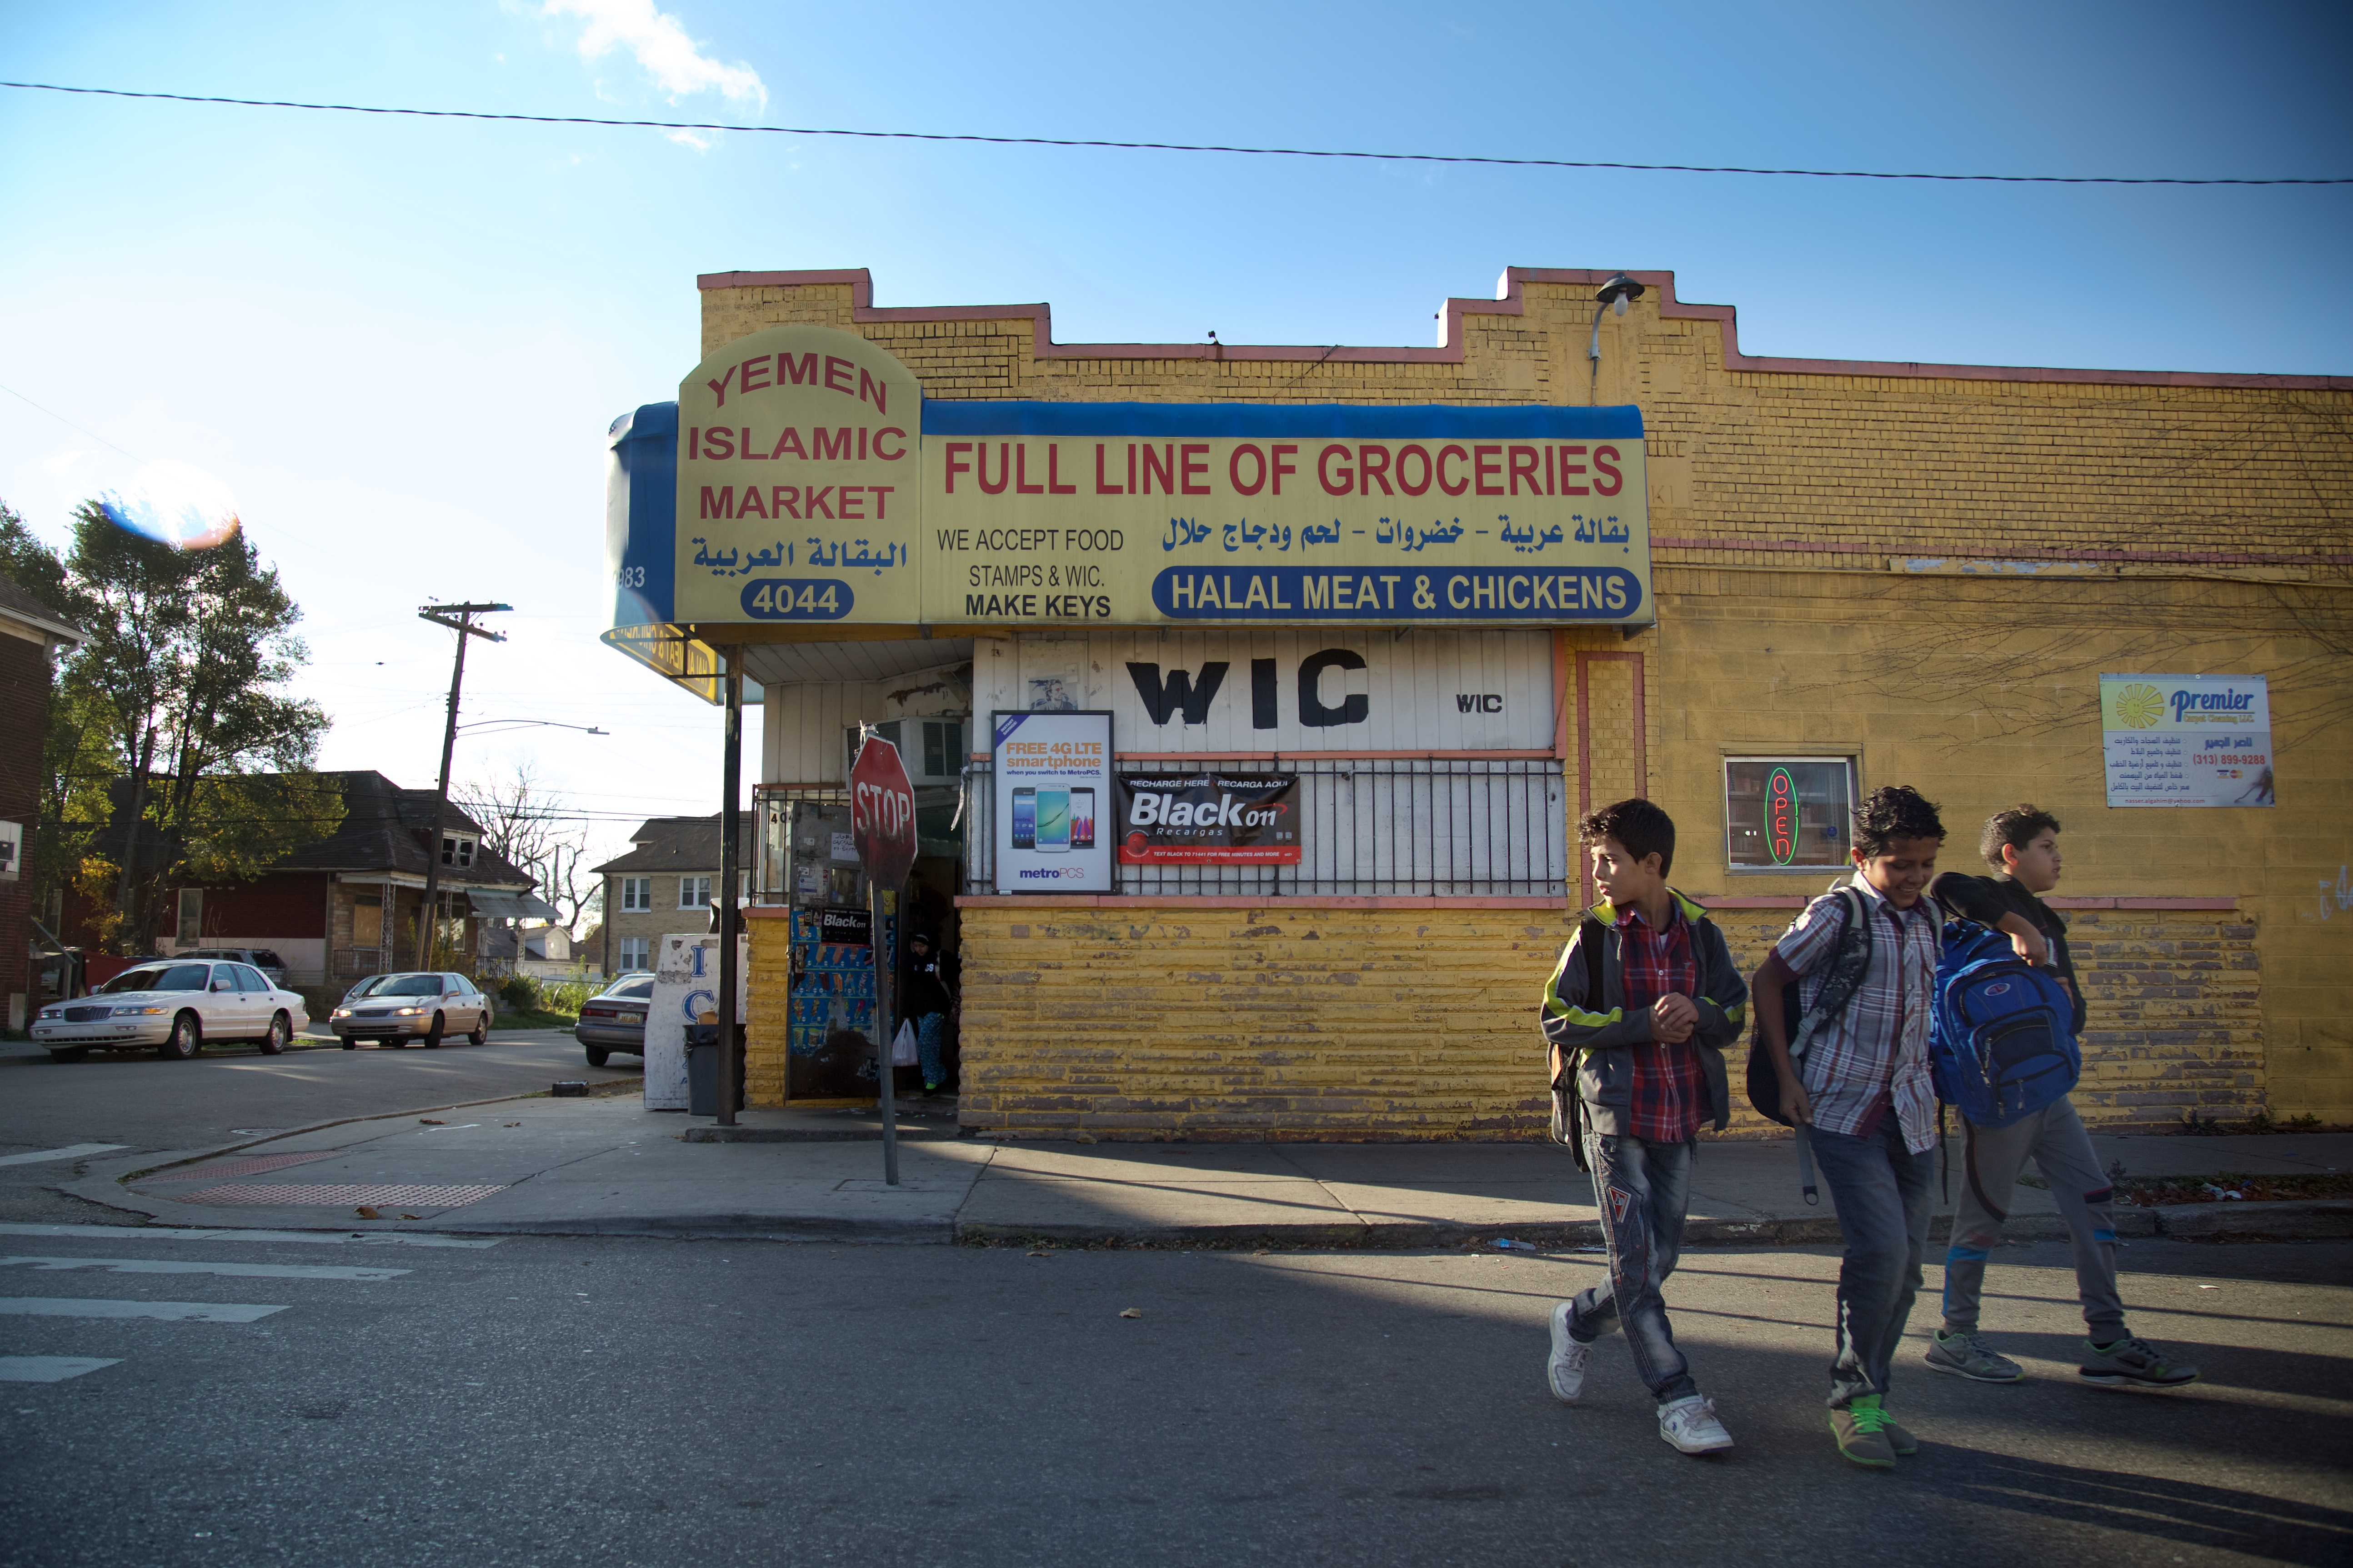 """Three kids walk away from a grocery store with a sign on a yellow awning that reads """"Yemen Islamic Market."""""""